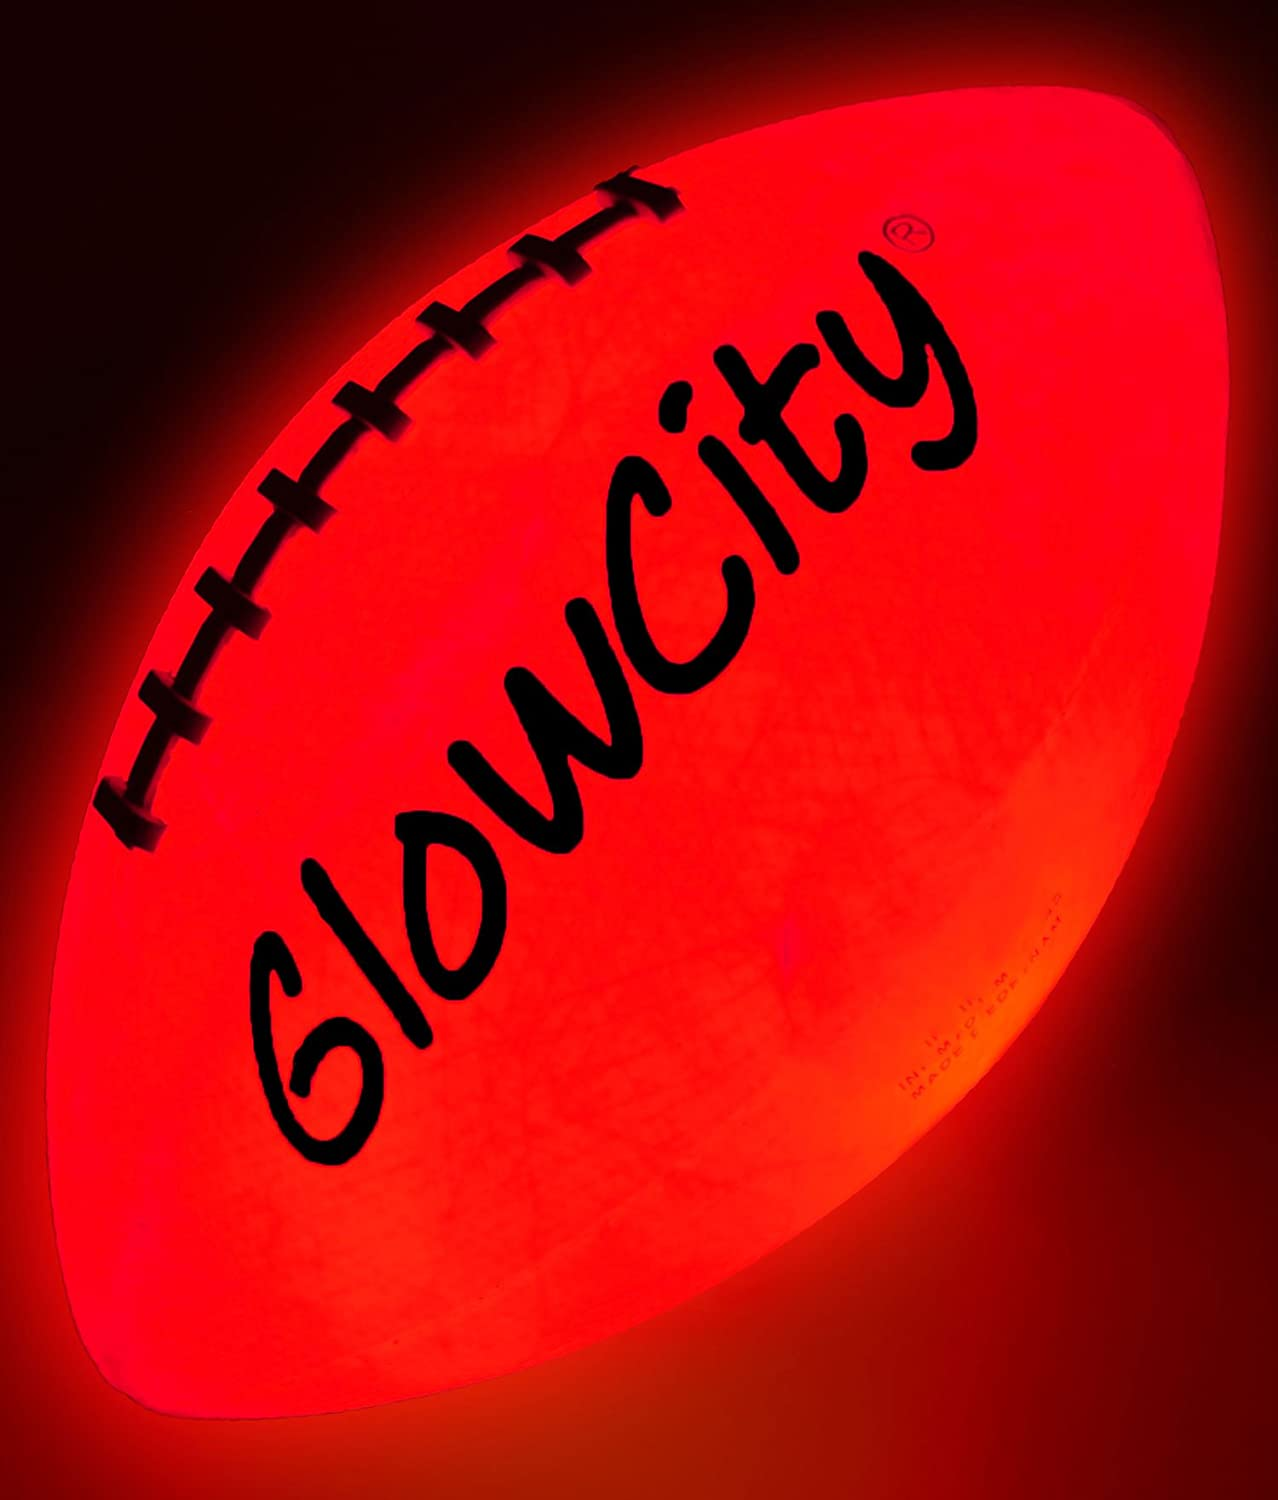 GlowCity Glow in The Dark Football - Light Up Balls for Kids, Teens and Adults - LED Lights and Pre-Installed Batteries Included - Official Size Footballs : Sports & Outdoors